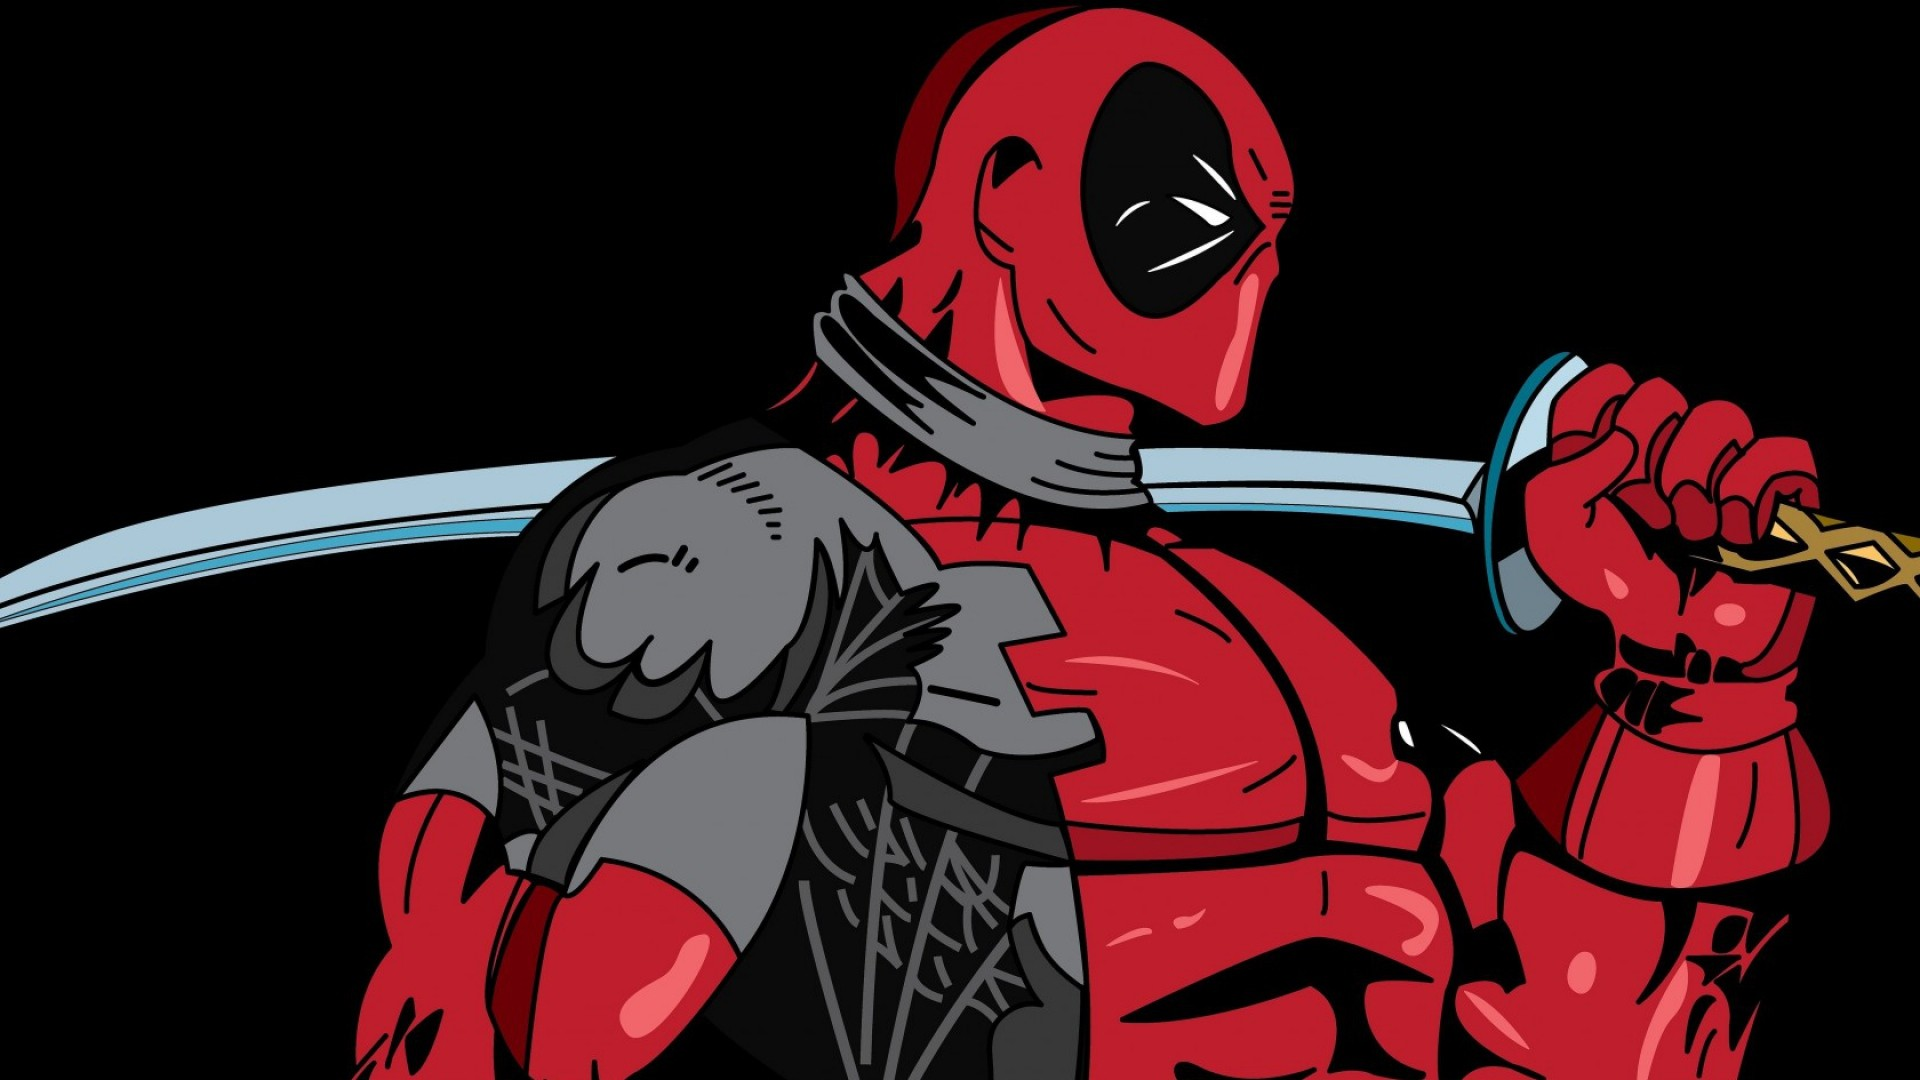 Deadpool wallpaper 1920x1080 download free stunning hd for Deadpool wallpaper 1920x1080